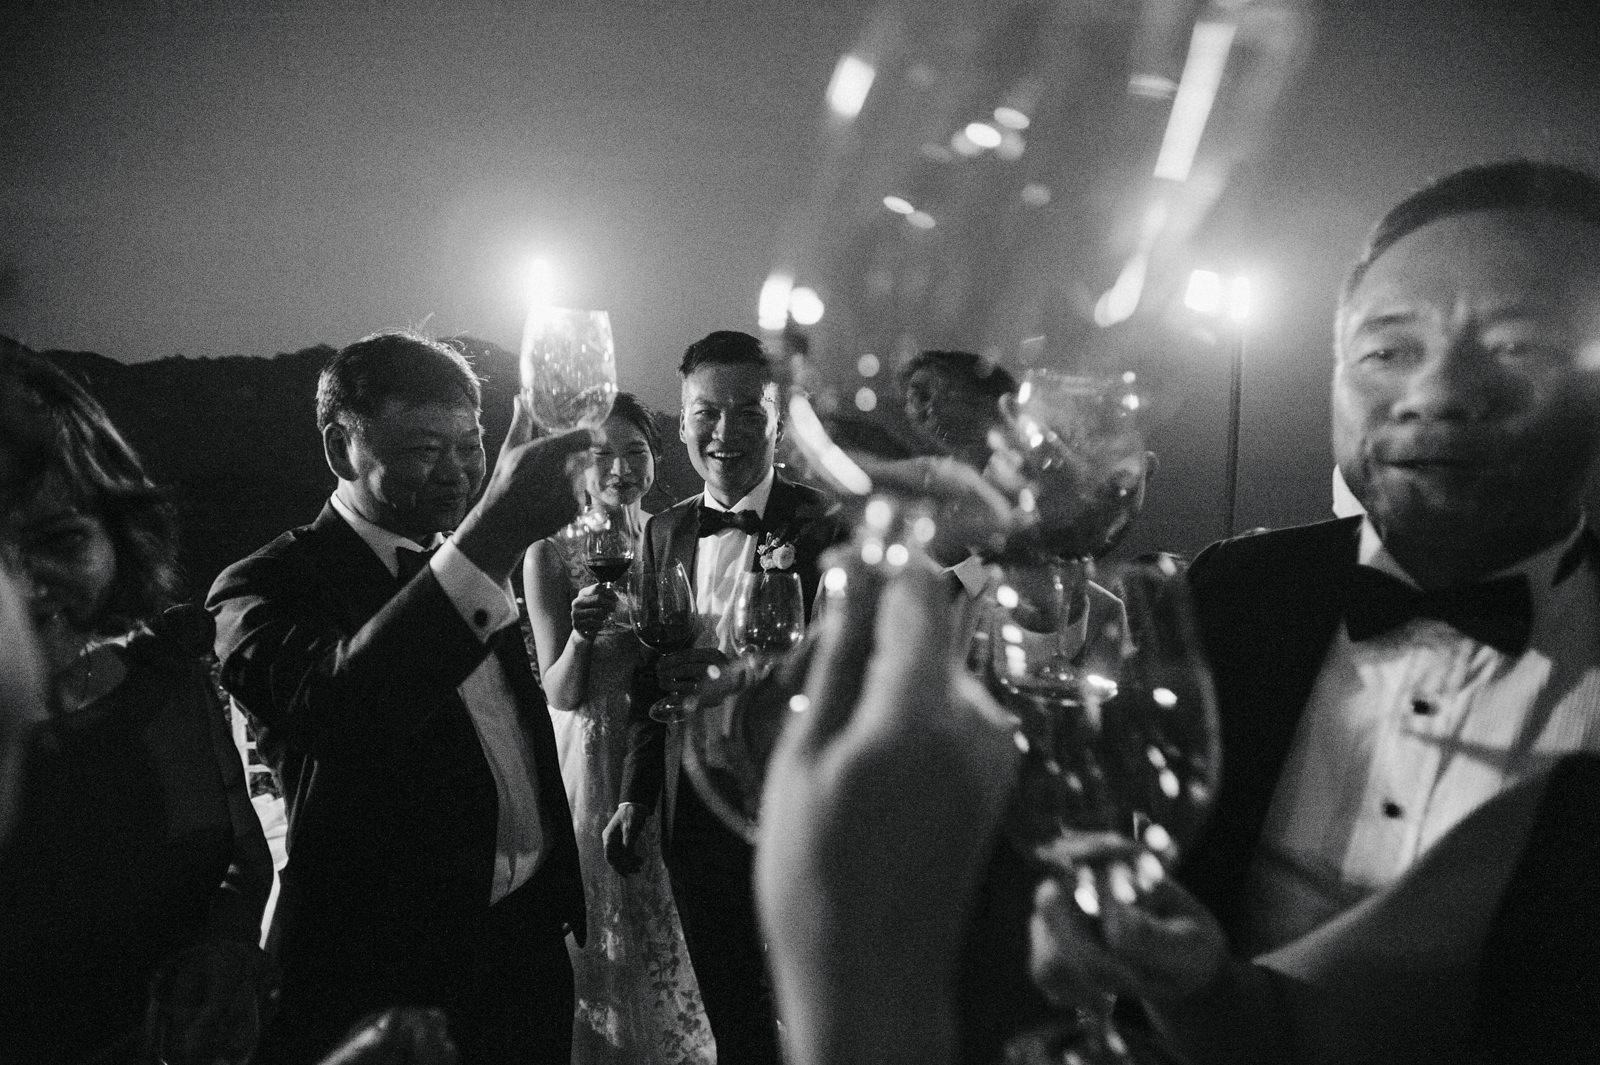 the groom having a toast with some friends in black and white